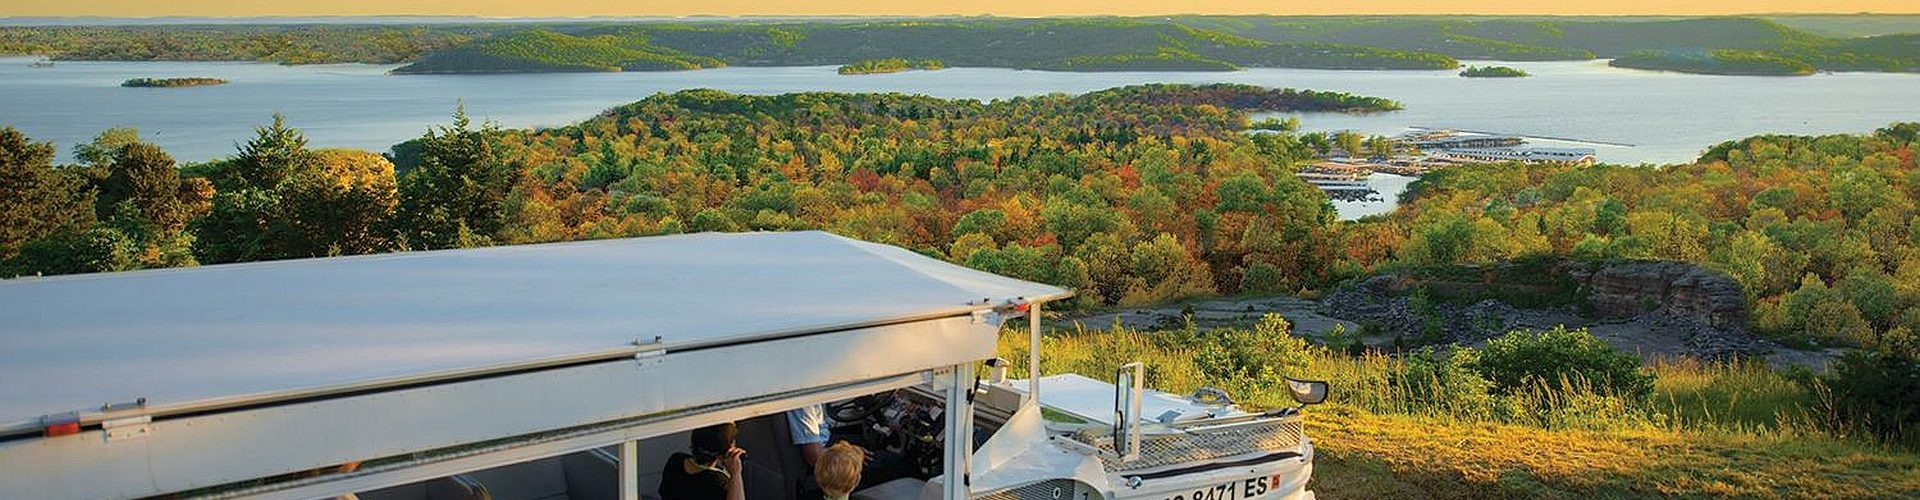 Sightseeing Tours in Branson